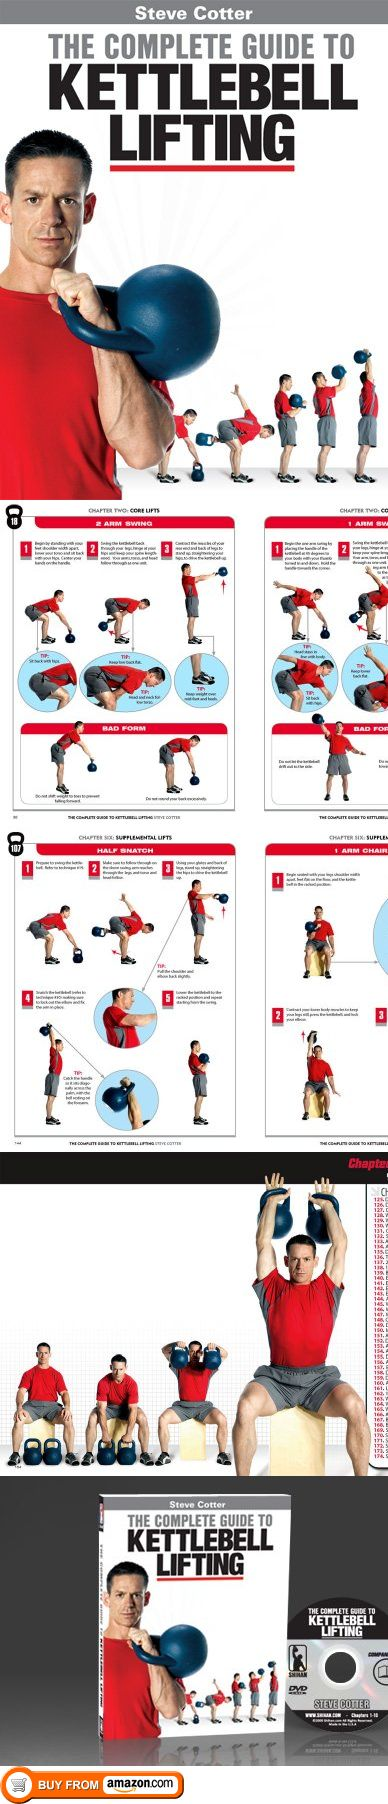 New Steve Cotter Book and DVD Combo - The Complete Guide to Kettlebell Lifting, Steve Cotter has done it again! The new Complete Guide to Kettlebell Lifting will do for Kettlebell books what his amazing Encyclopedia of Kettlebell Lifting did for Kettlebell DVDs. This book is pack..., #Sporting Goods, #Kettlebells, $79.99